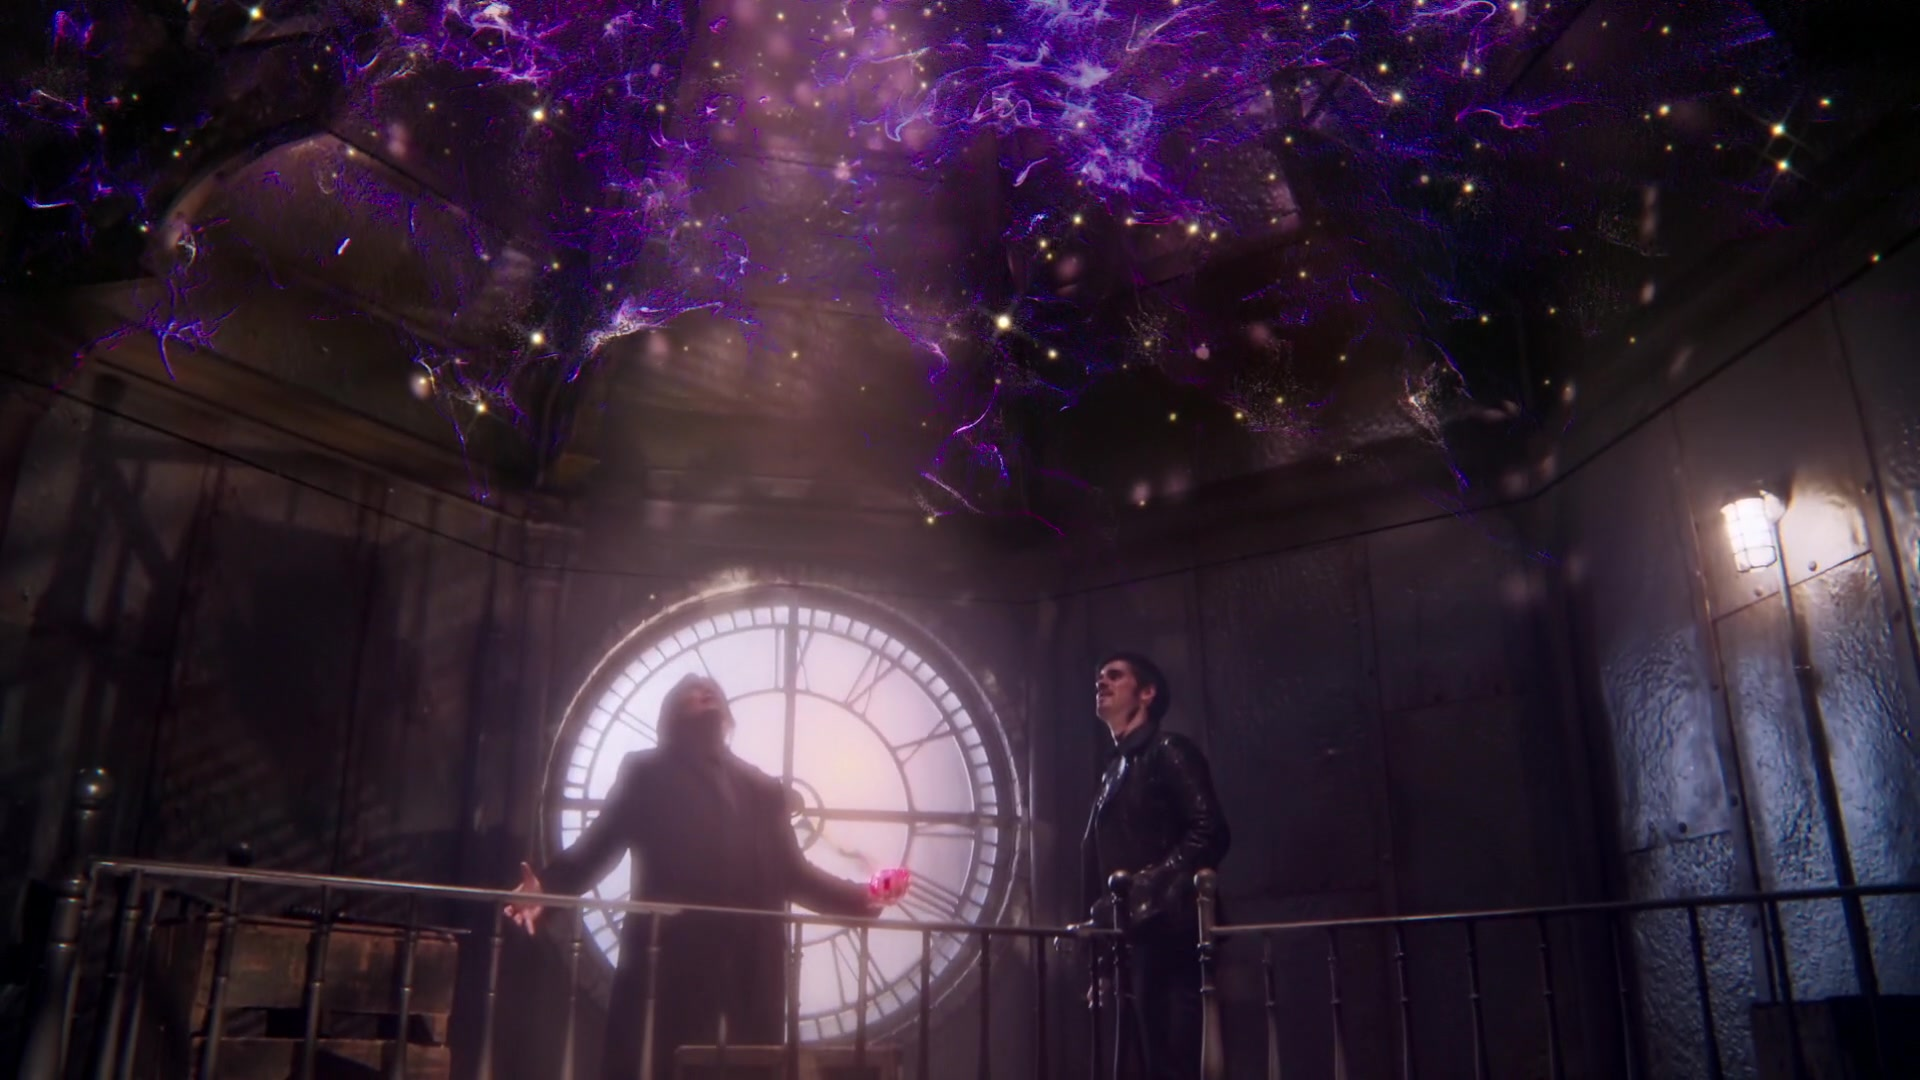 Réactions et discussion - Page 6 Once_Upon_A_Time_S04E12_1635